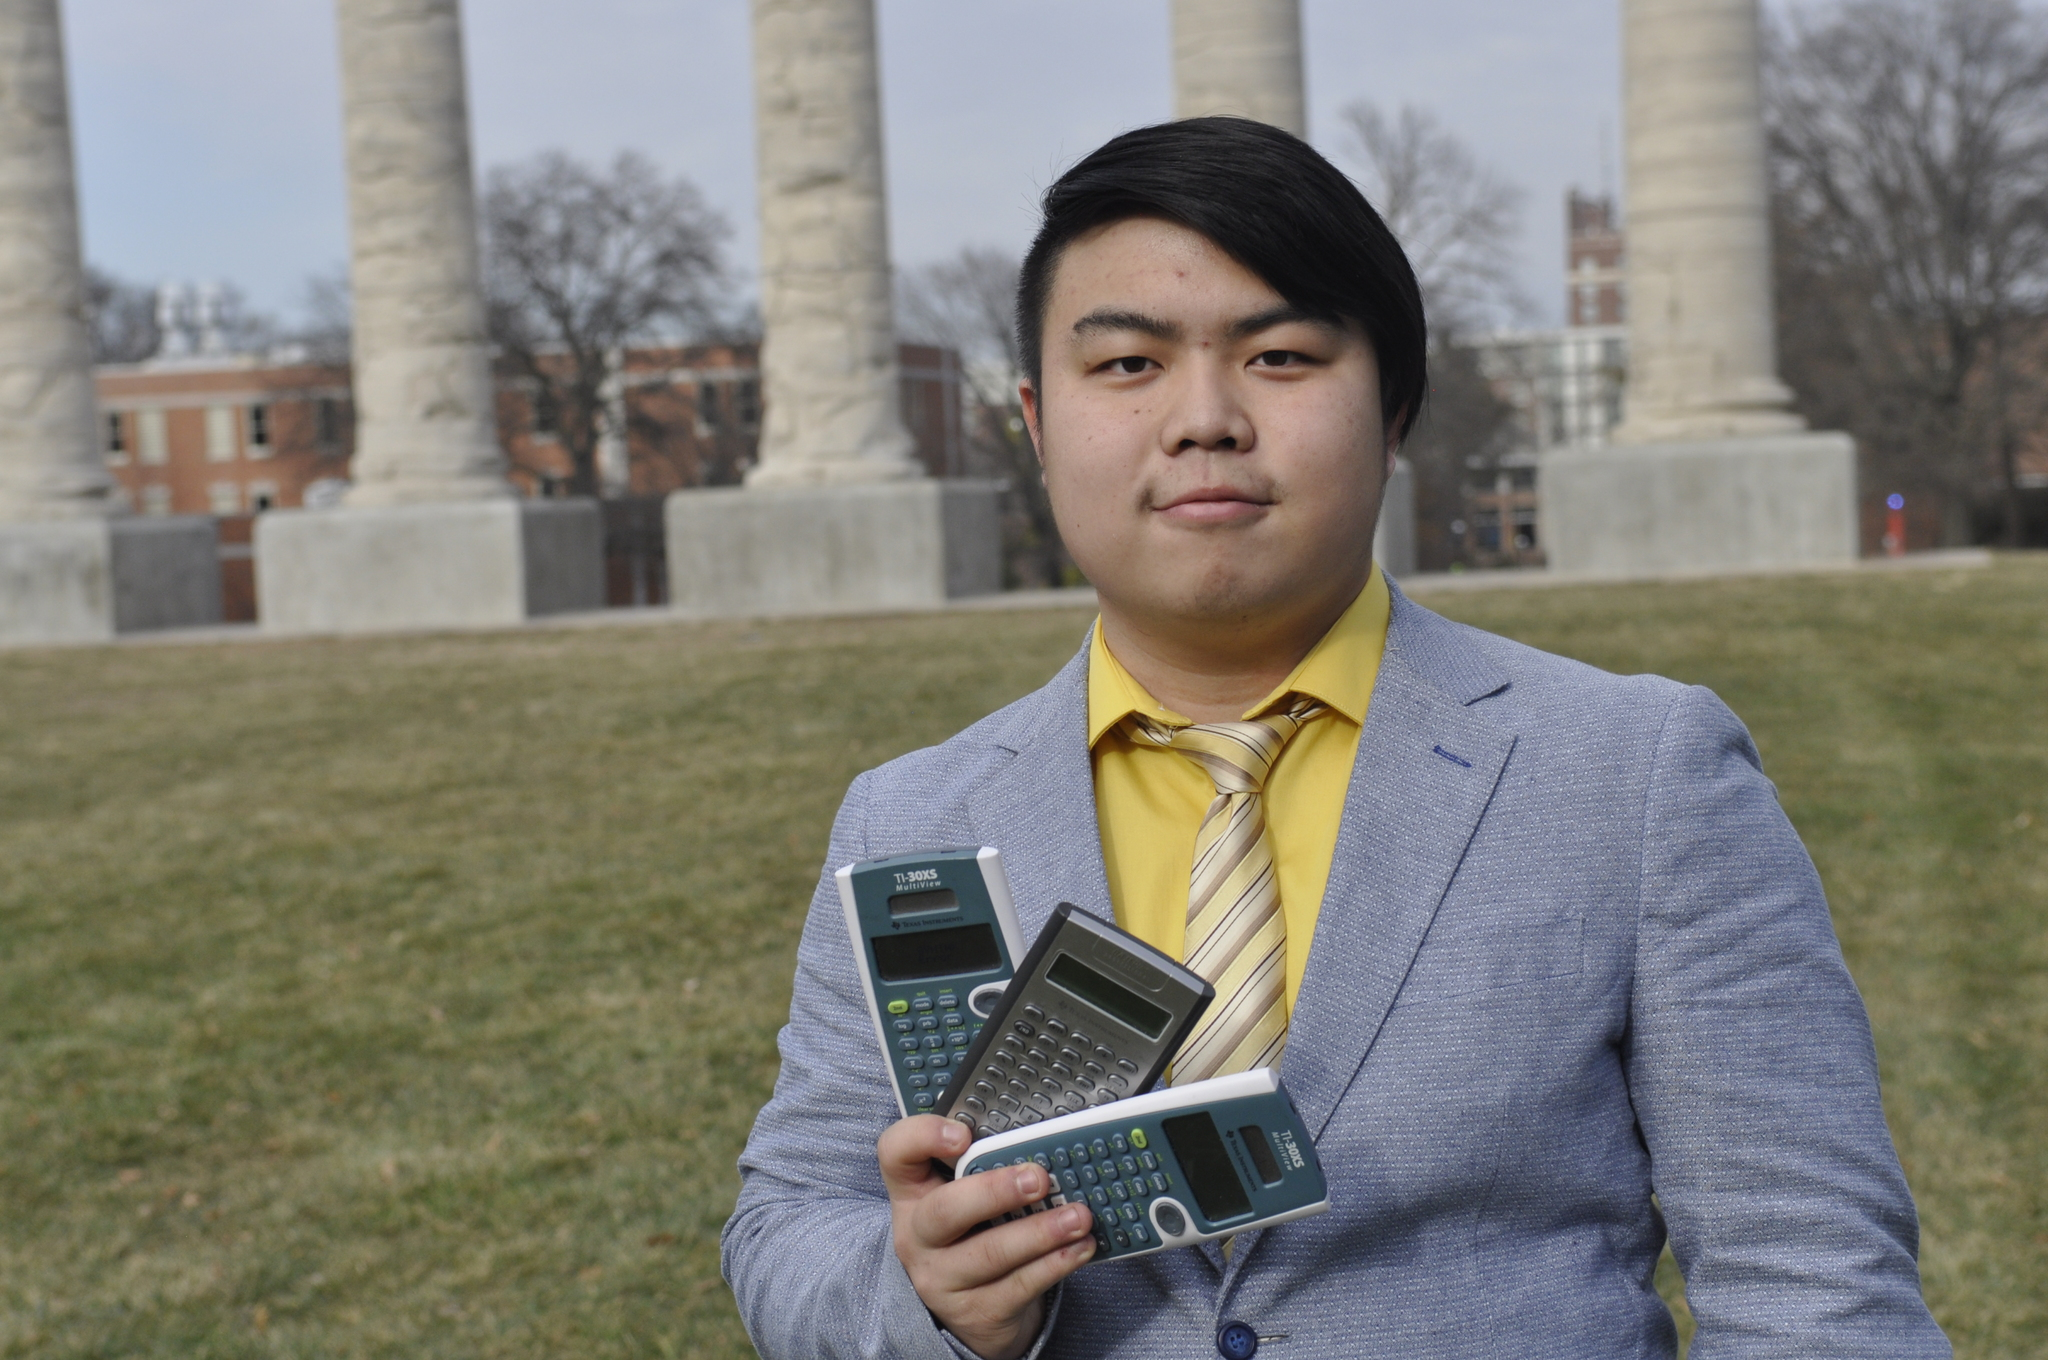 Xu shows off his calculator collection in front of the Columns